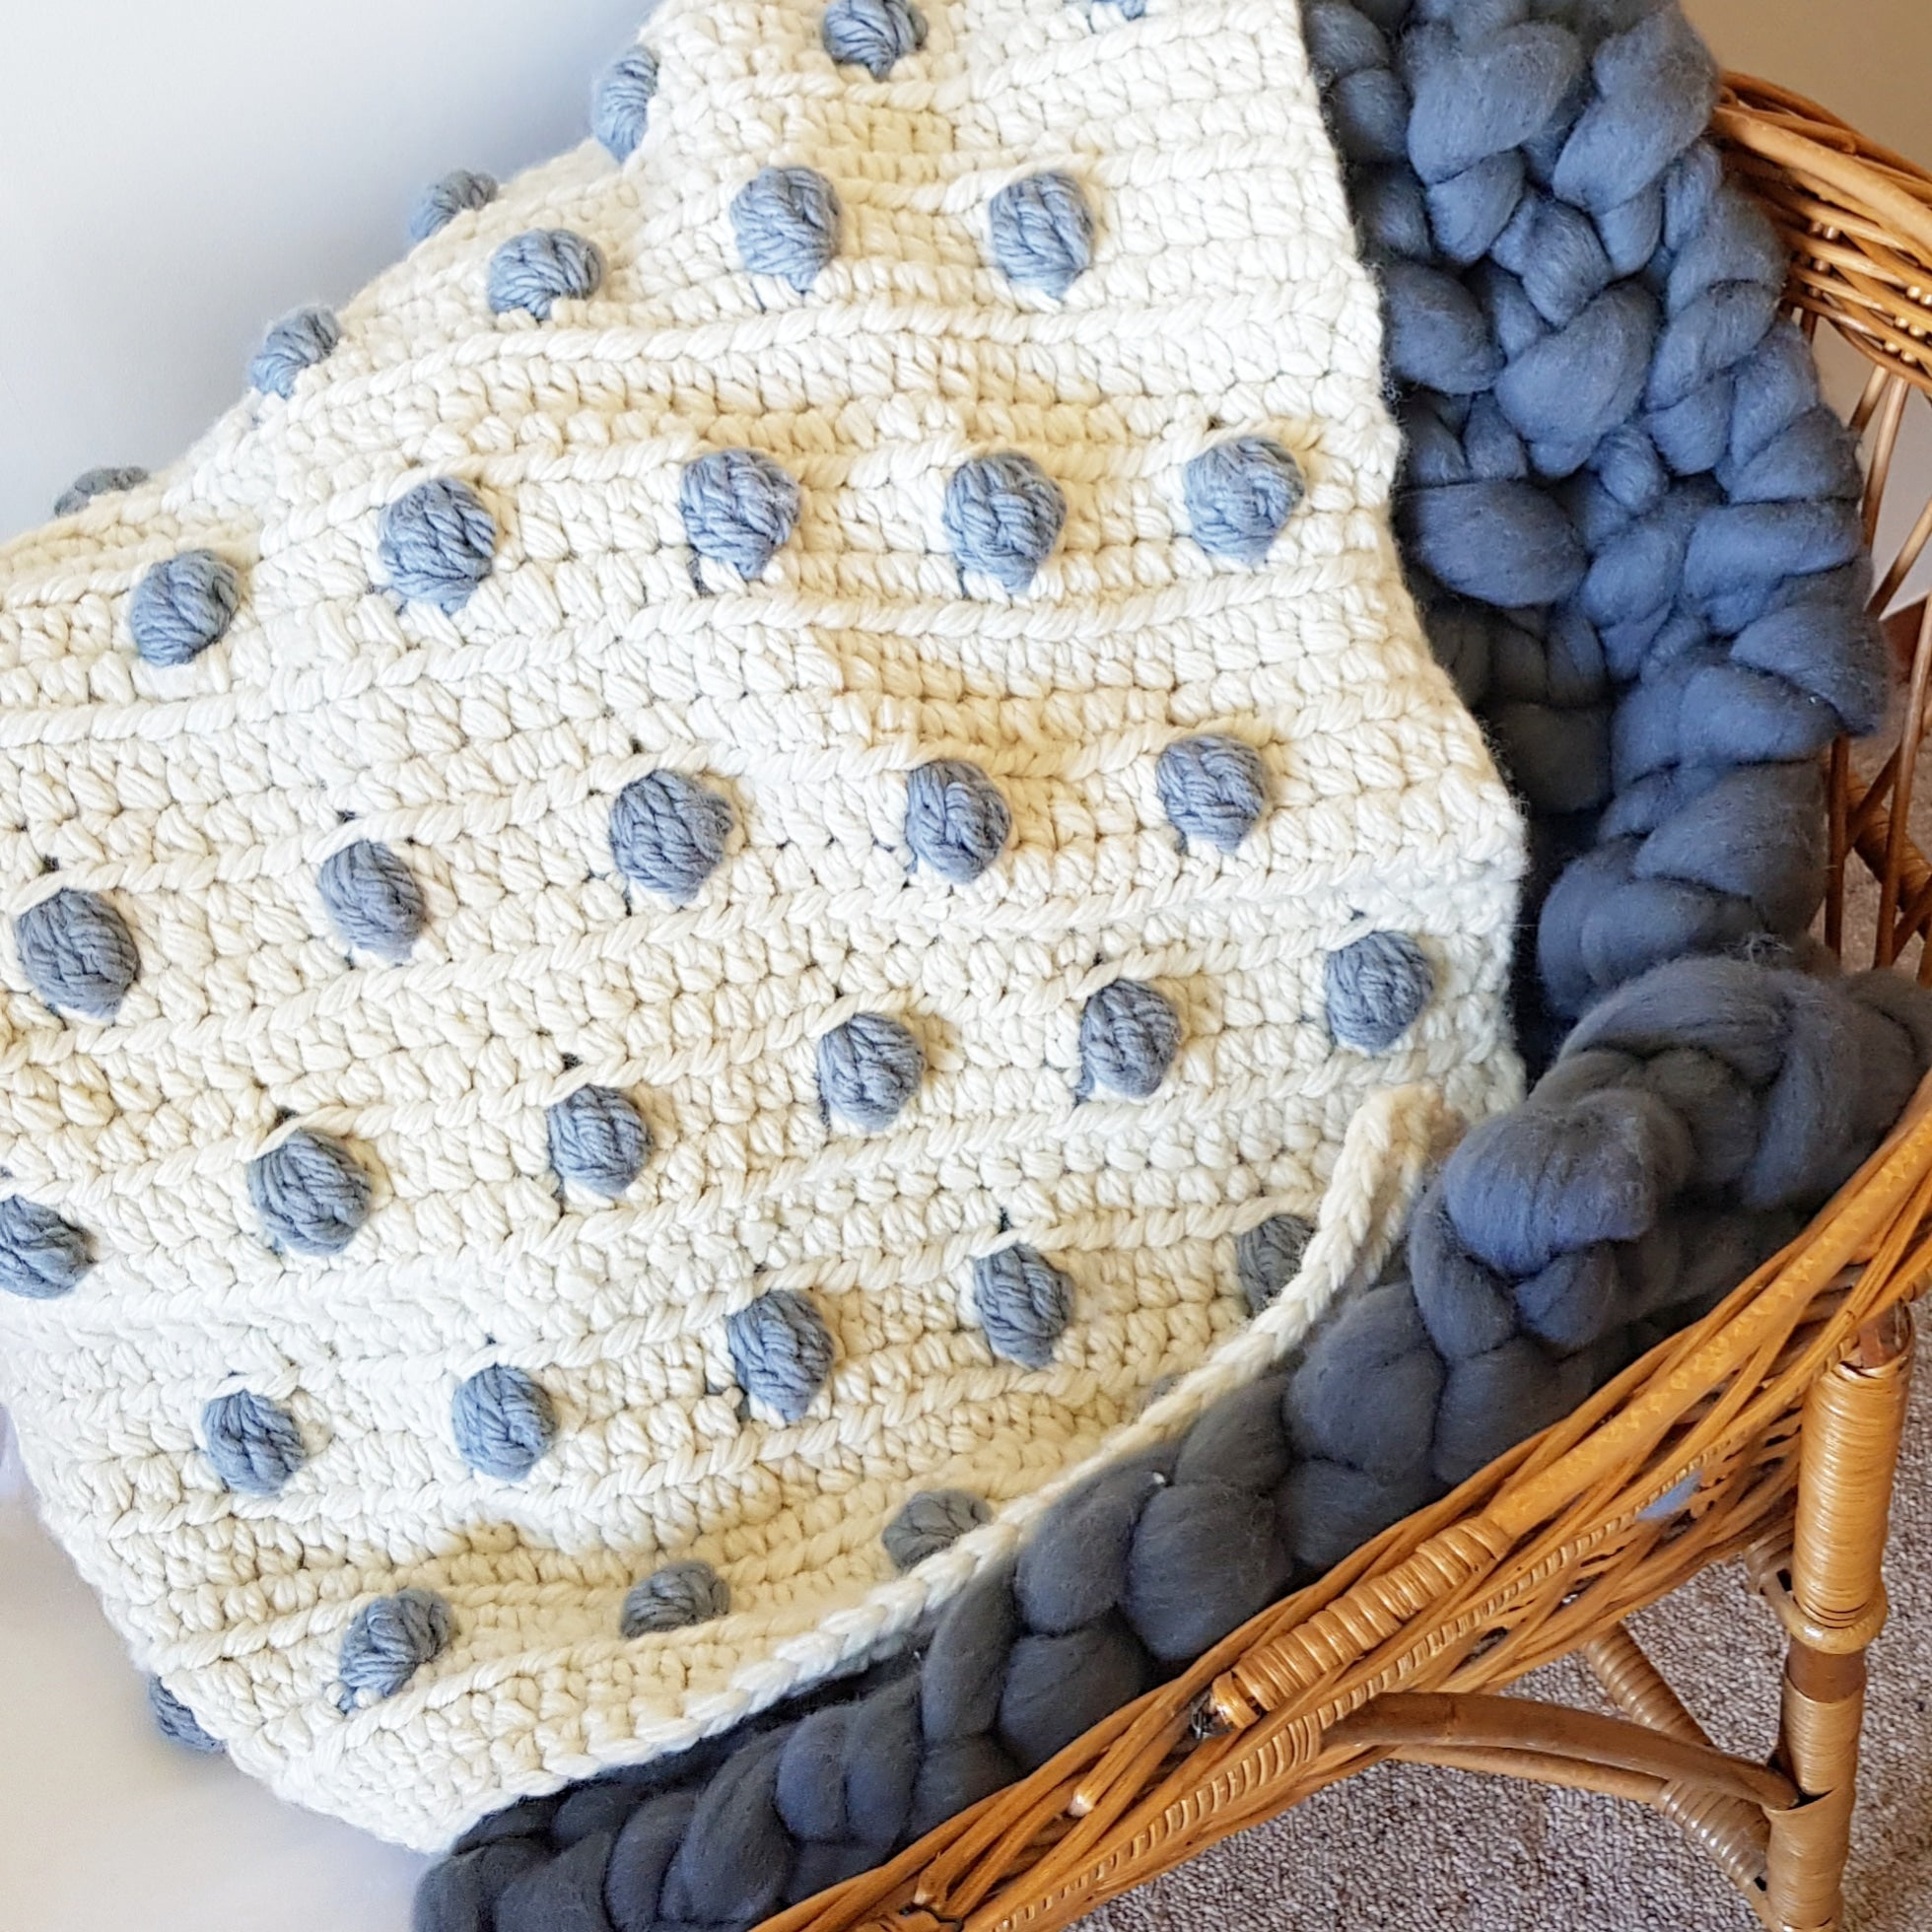 CROCHET KIT | White & Grey Bobble Baby Blanket Kit